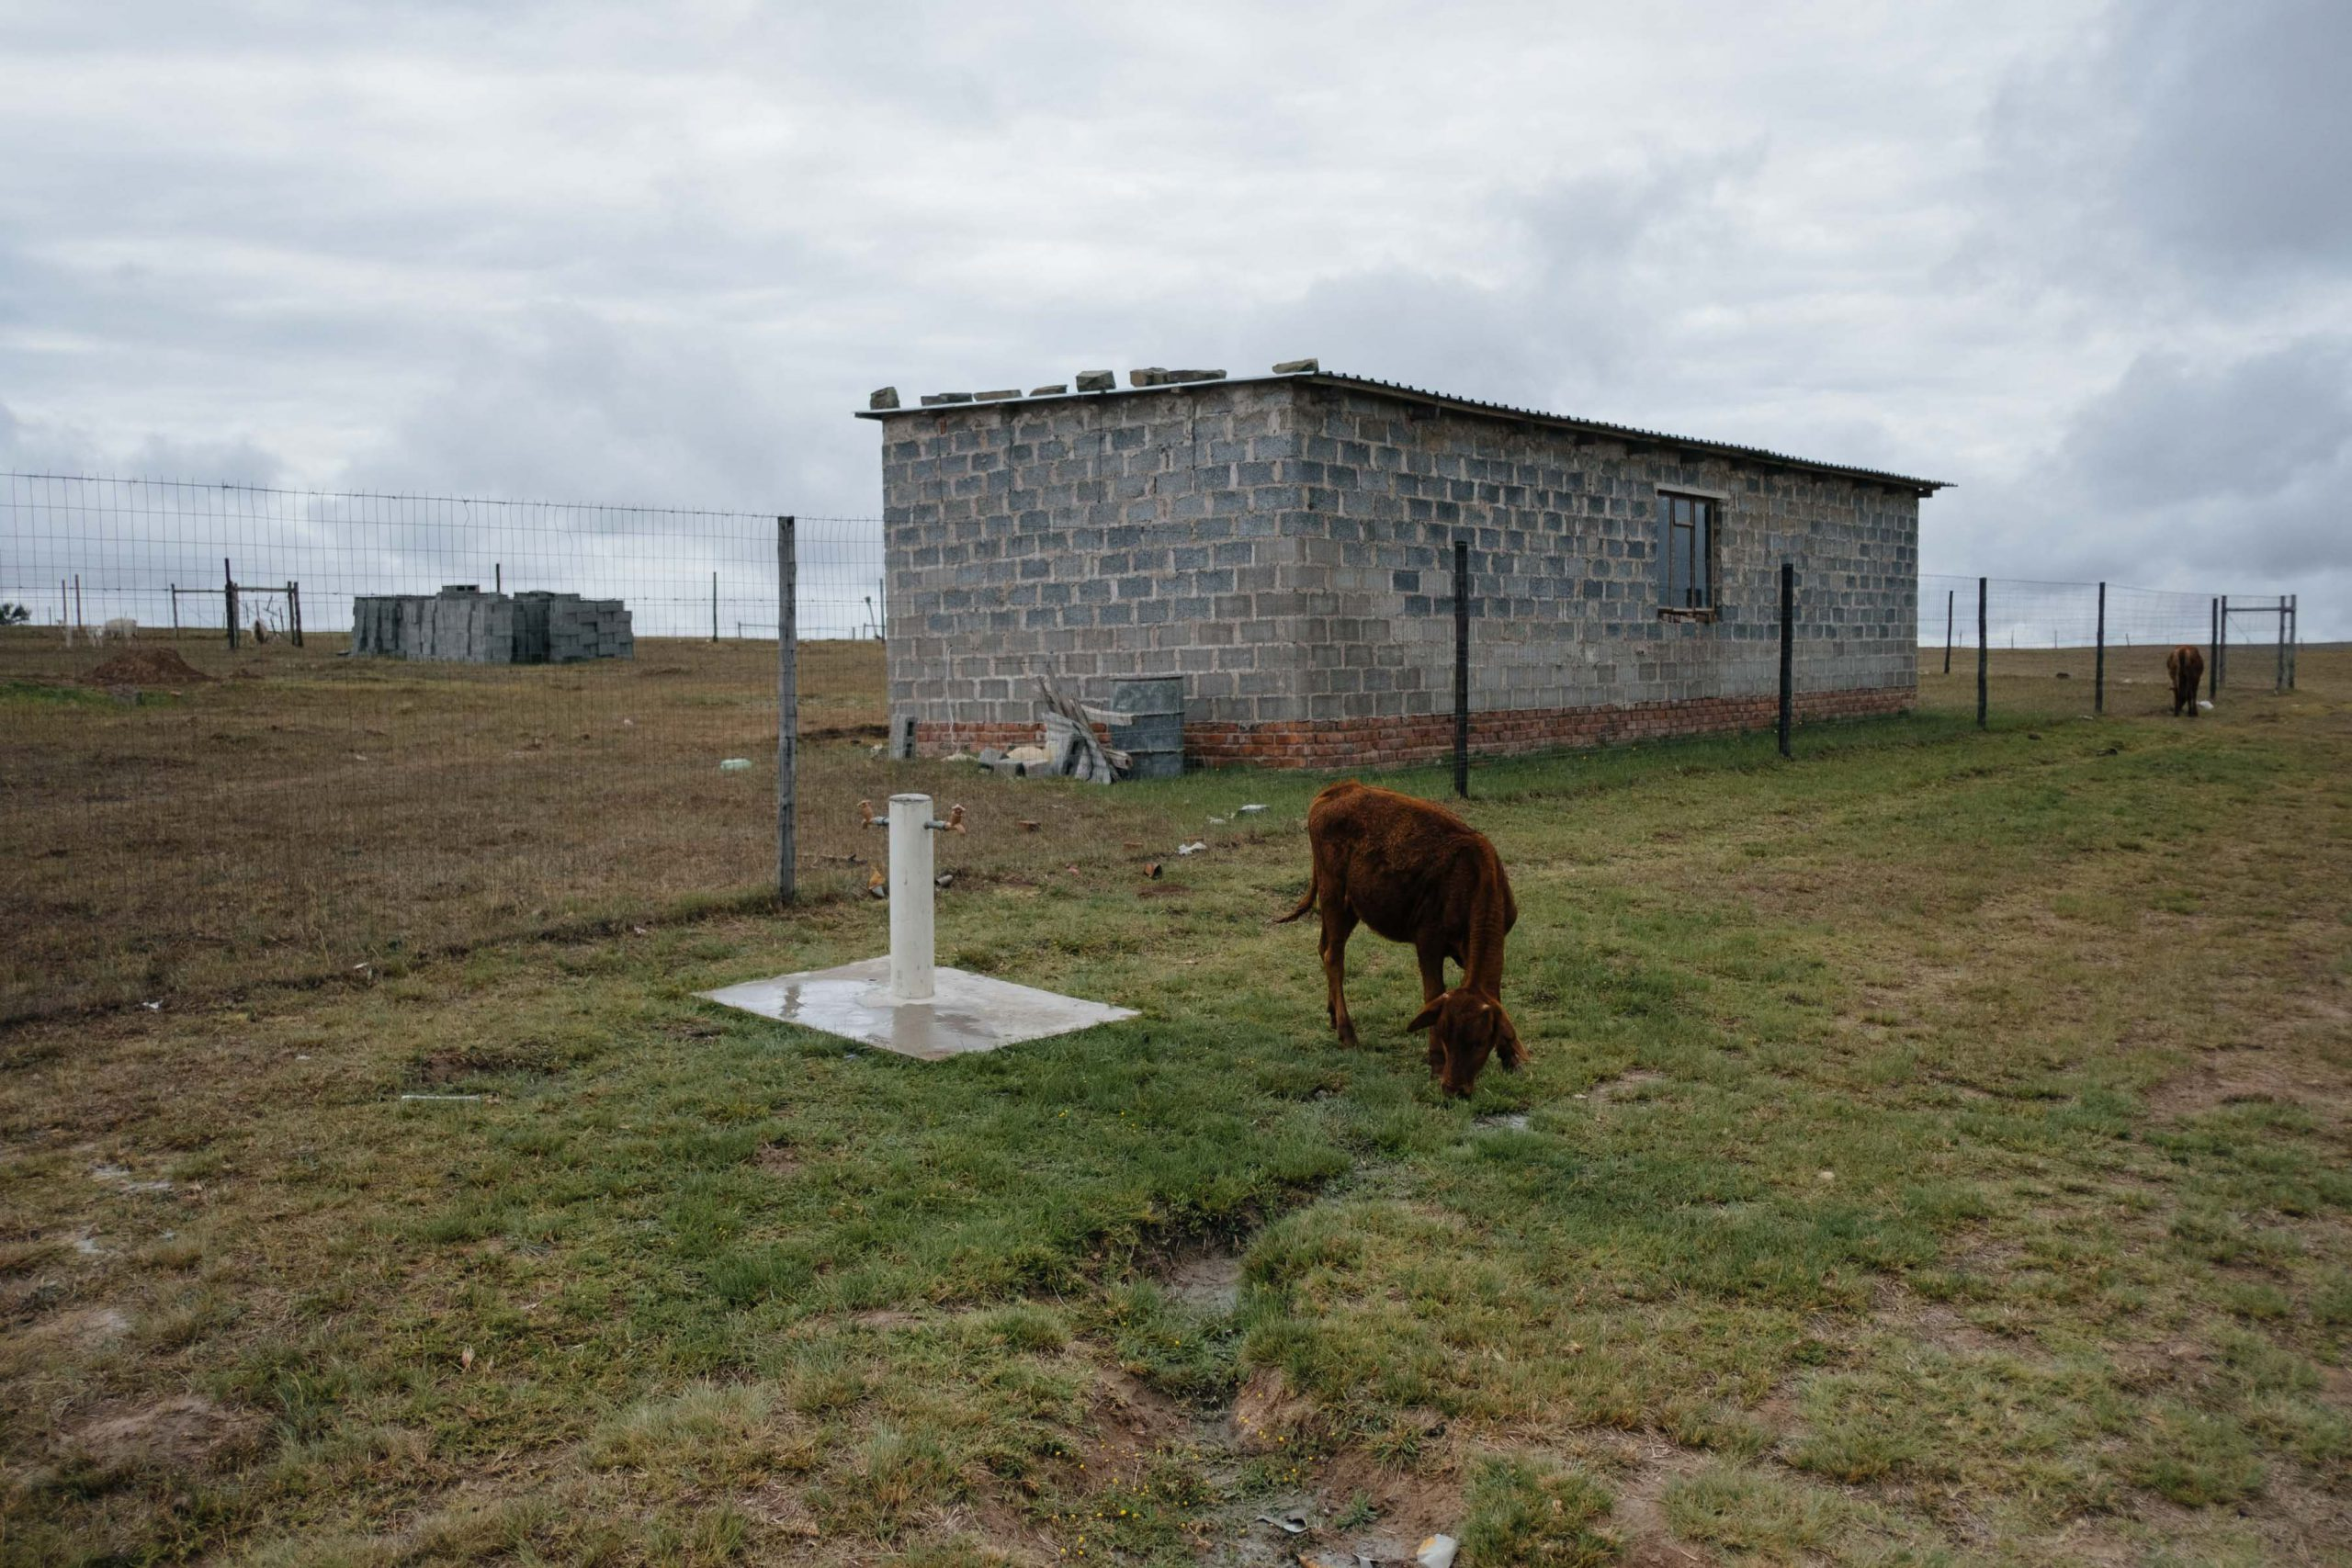 10 November 2019: A cow grazes on a patch of green grass around a municipal tap in Ngqwele Village. Sustained low rainfall since 2016 has reduced the productivity of the region's grasslands leading to extensive livestock losses.